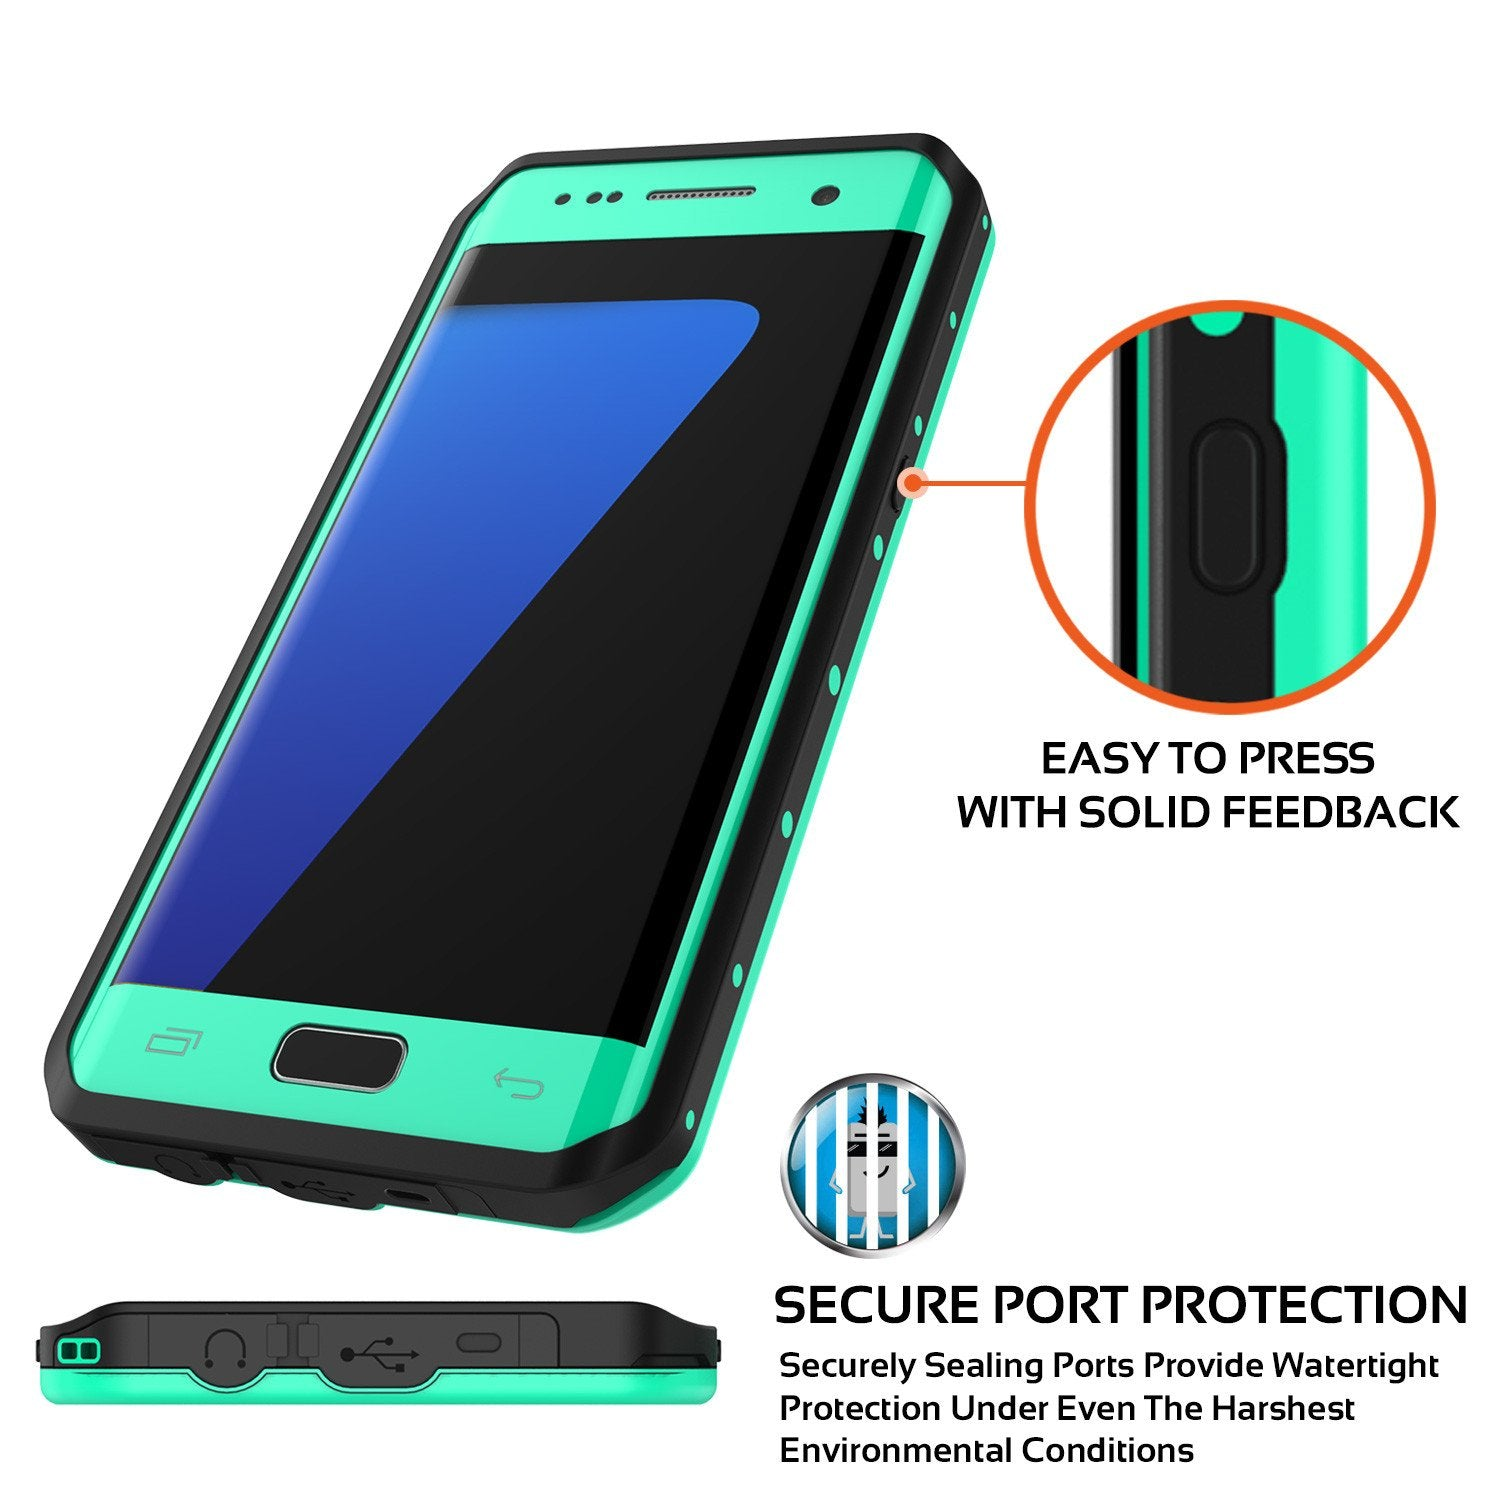 Galaxy S7 EDGE Waterproof Case PunkCase StudStar Teal Thin 6.6ft Underwater IP68 Shock/Snow Proof